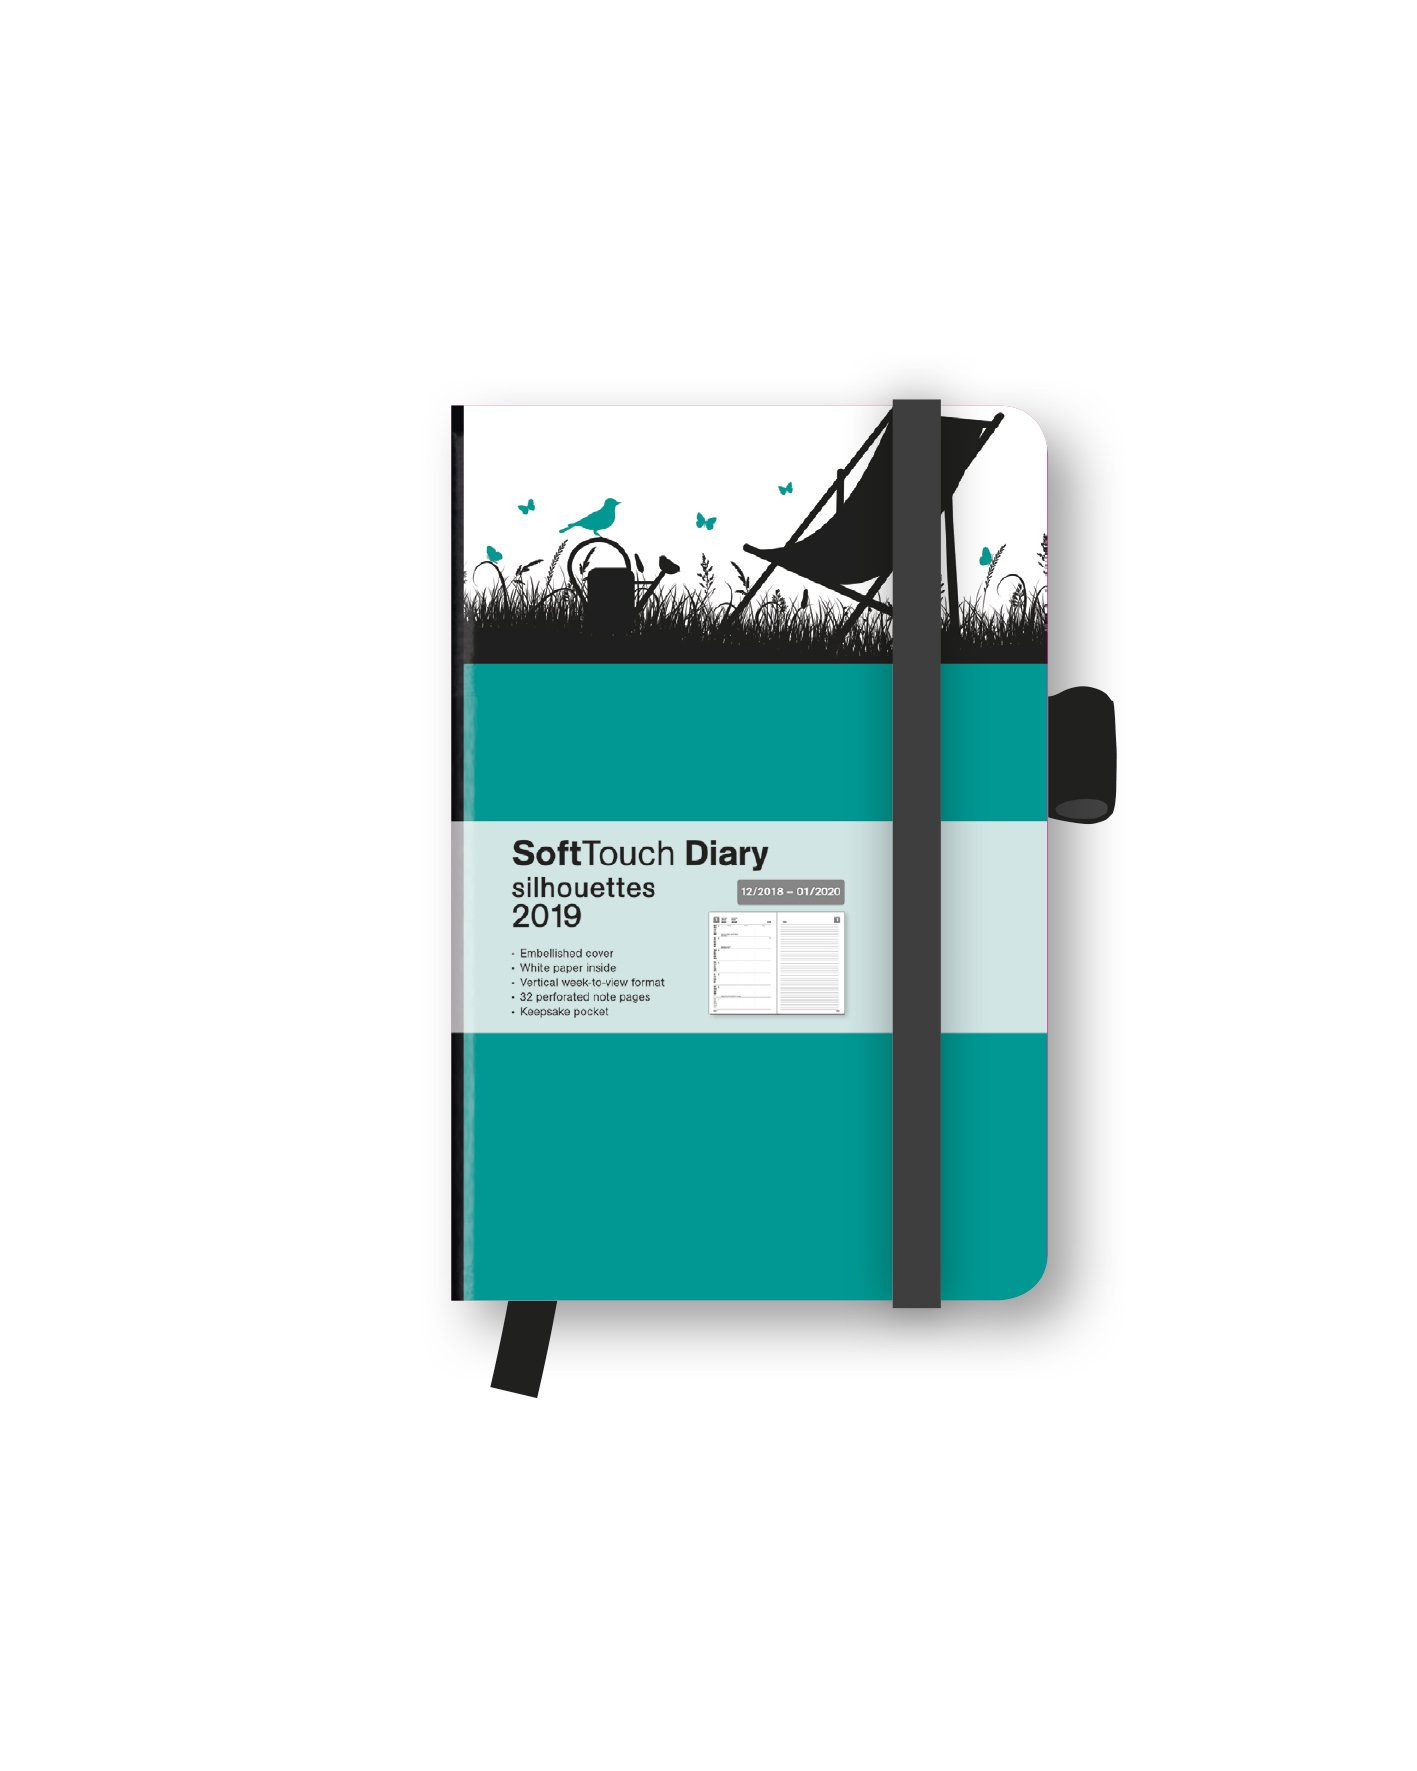 2019 Silhouettes Garden SoftTouch Diary: Amazon.es: teNeues ...